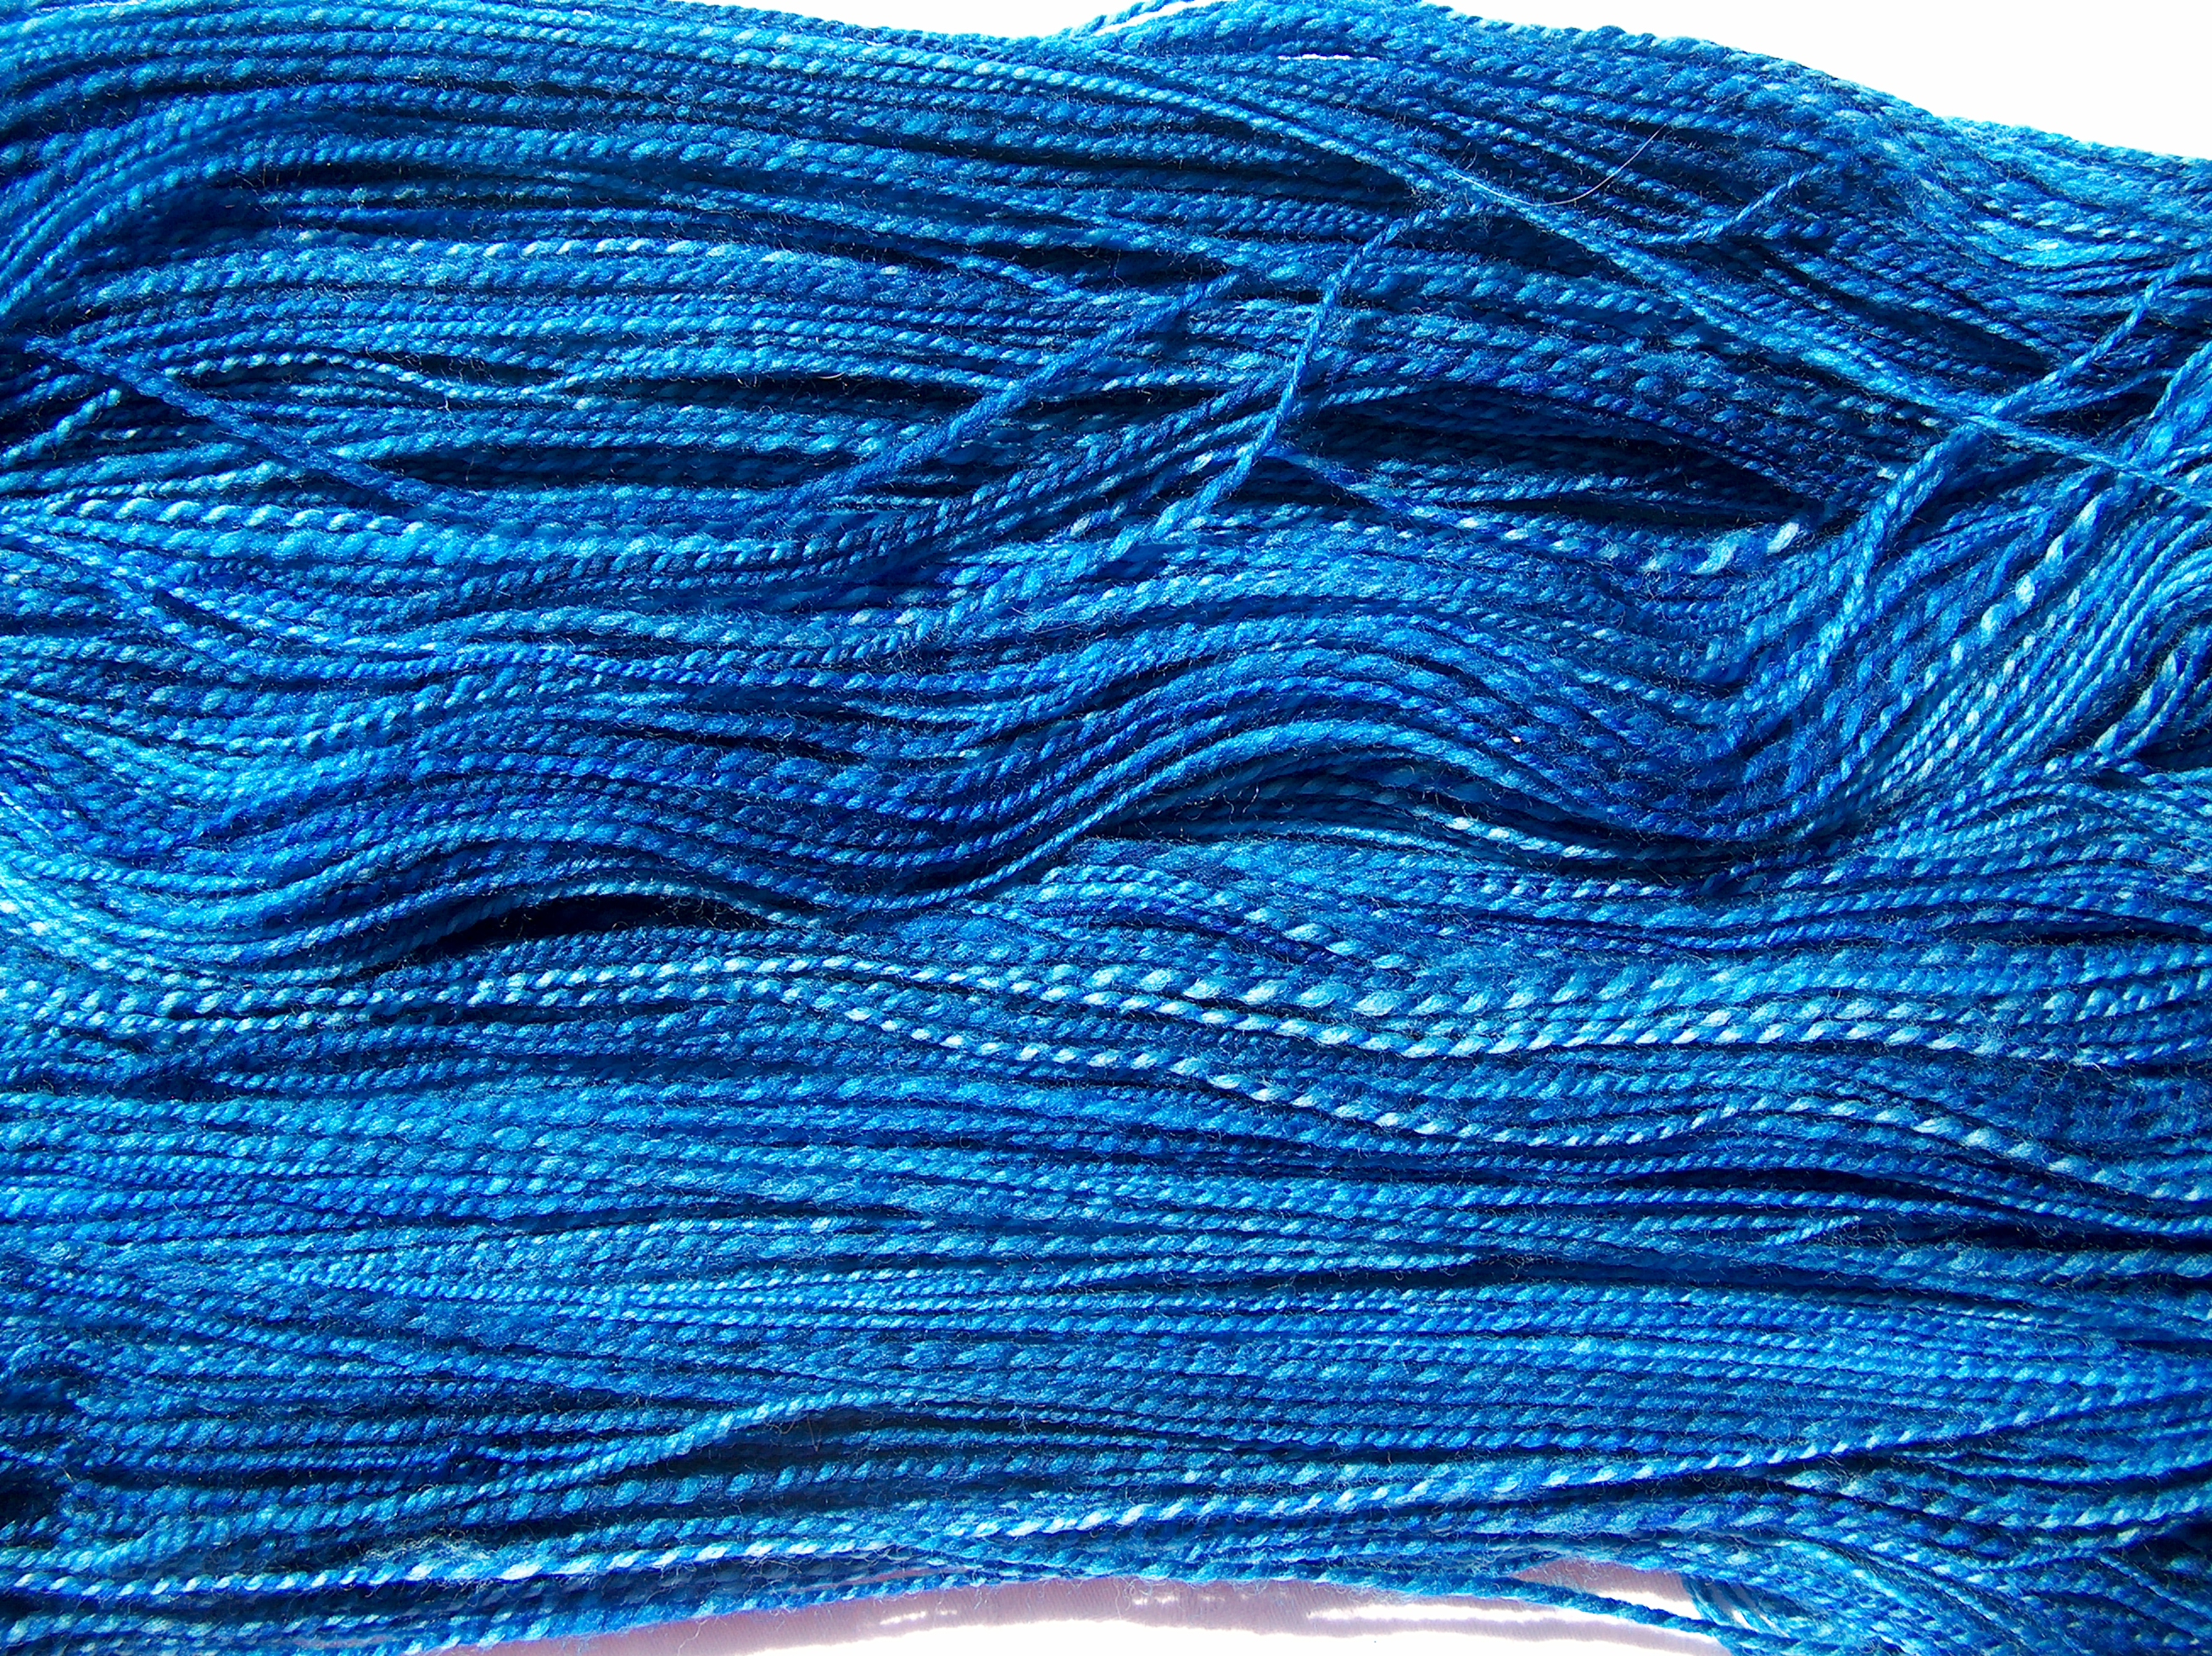 Superwash-Merino-Wolle in Blautönen ca. 150g